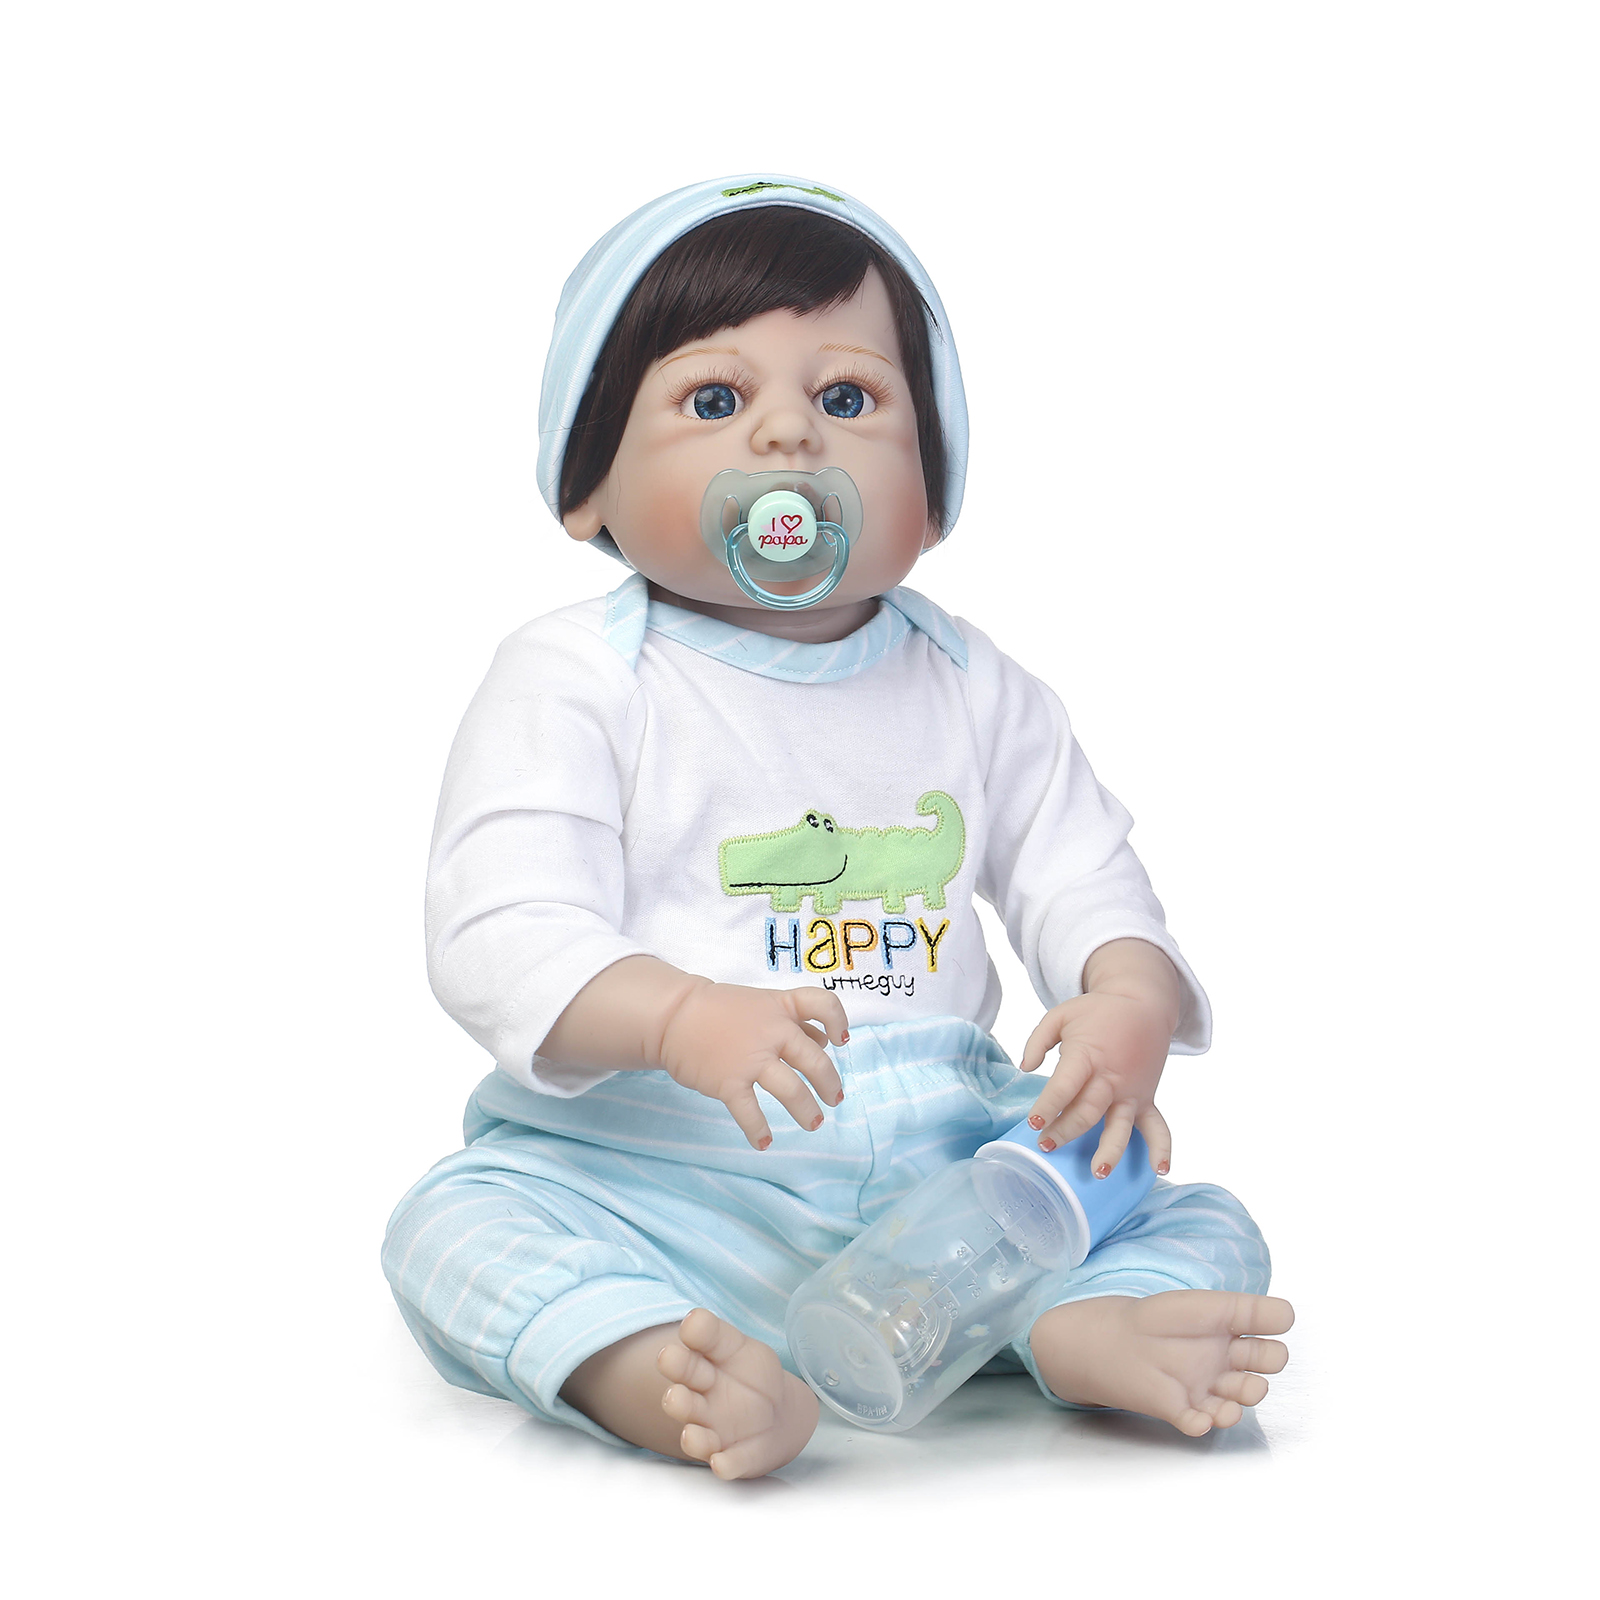 Soft Vinyl Lifelike Fashion Dolls with Cloth Hat Bottle Magic Pacifier 56cm New Baby Reborn Doll For Girl Play House Bath ToySoft Vinyl Lifelike Fashion Dolls with Cloth Hat Bottle Magic Pacifier 56cm New Baby Reborn Doll For Girl Play House Bath Toy